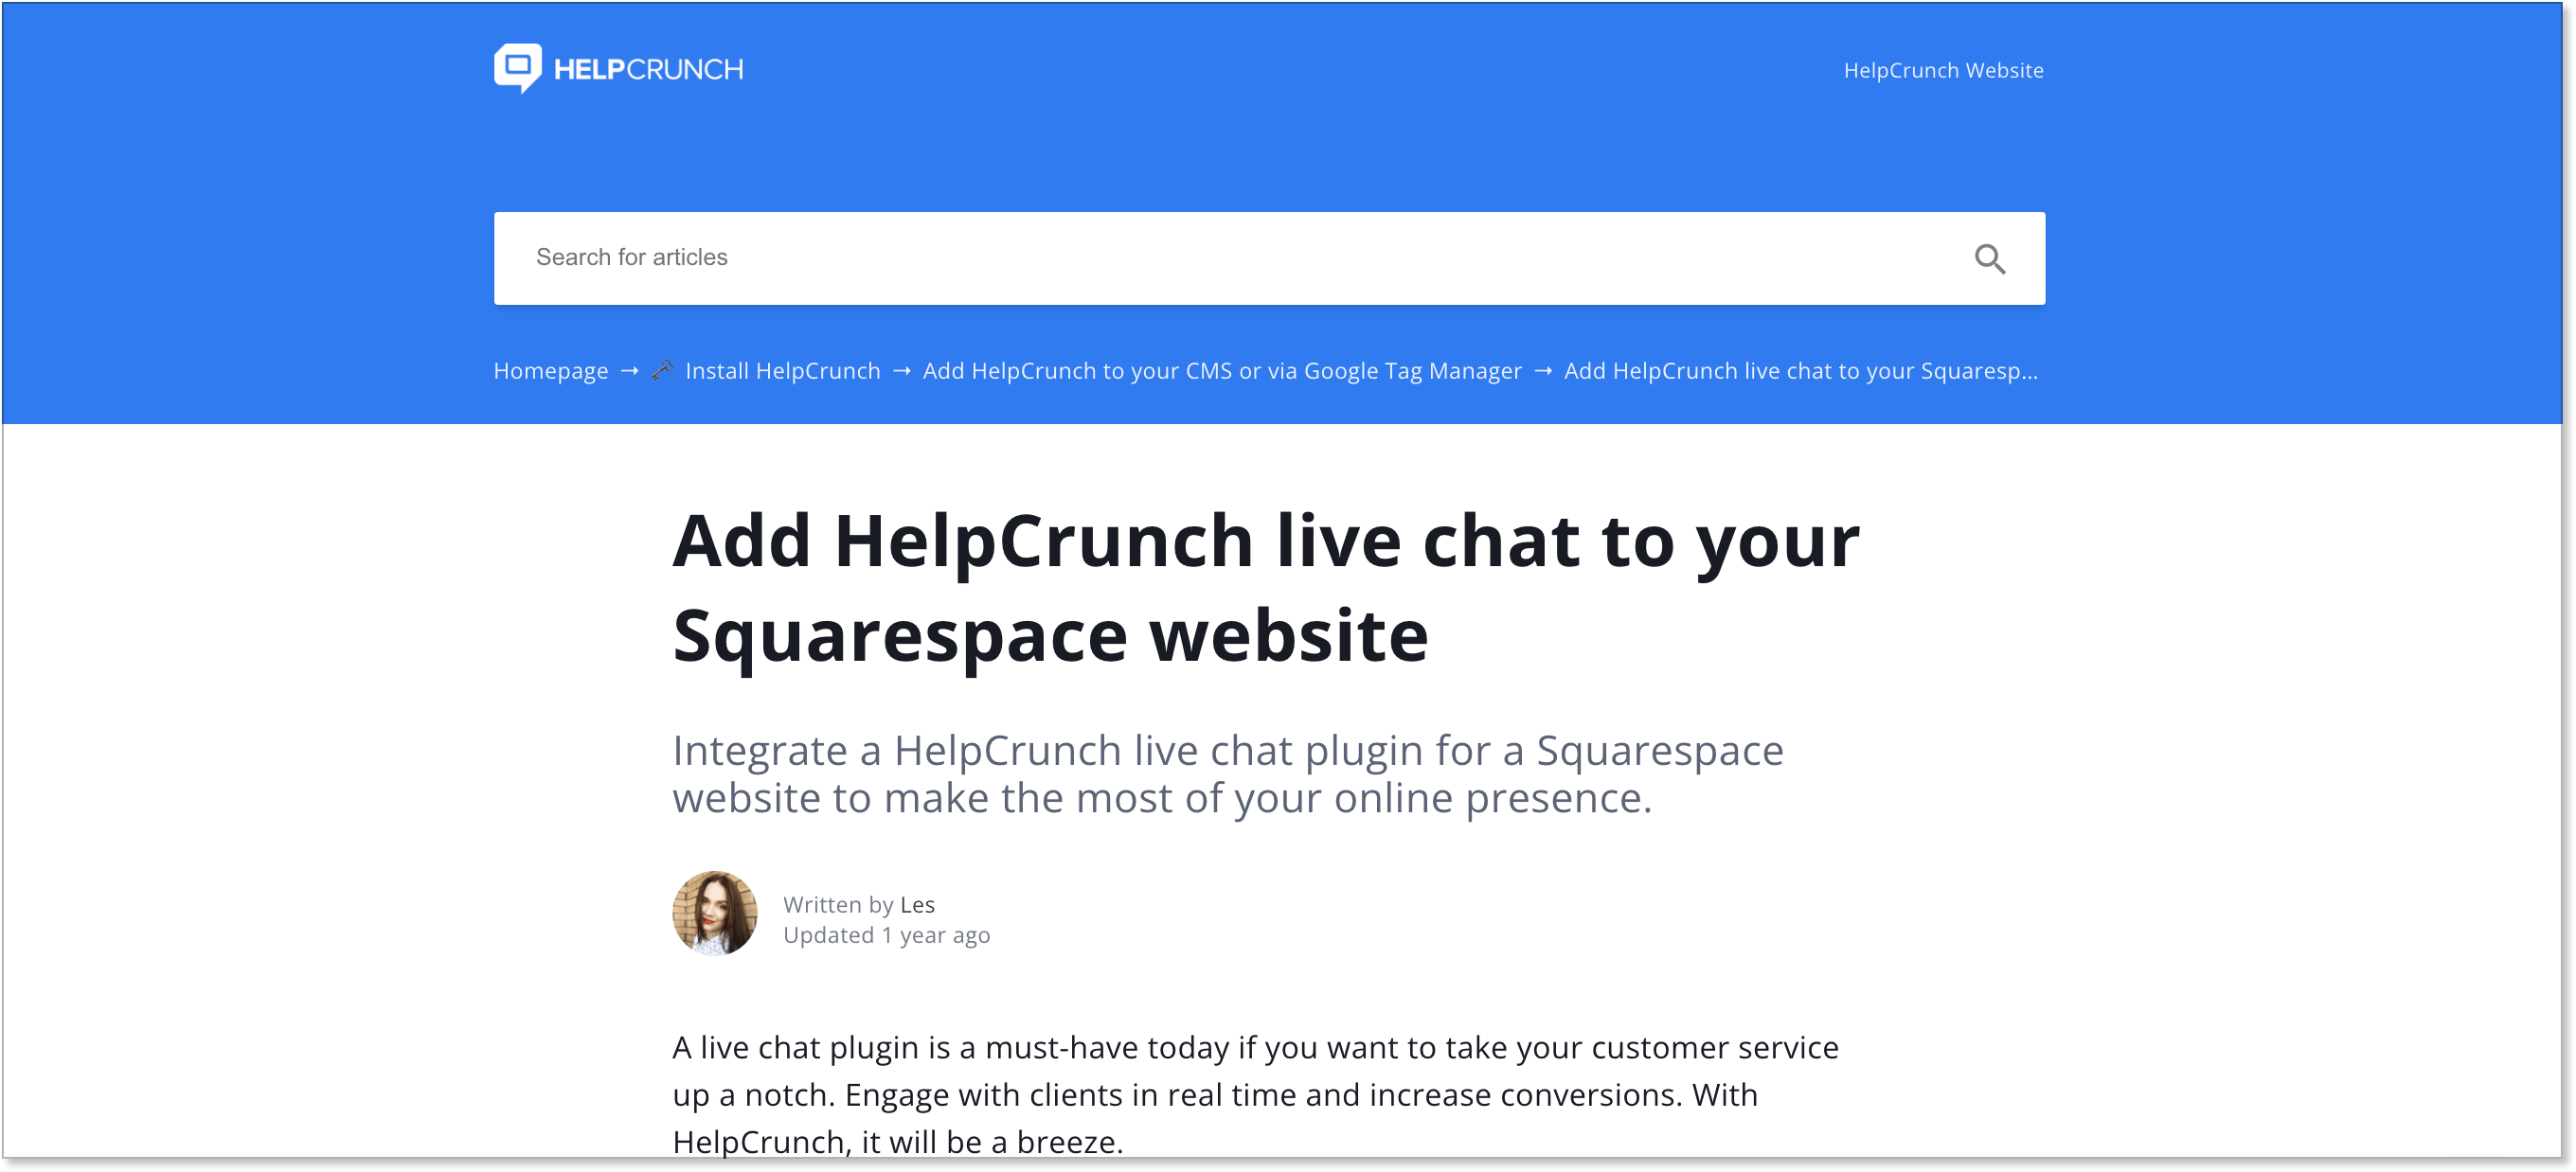 HelpCrunch's installation guide for Squarespace